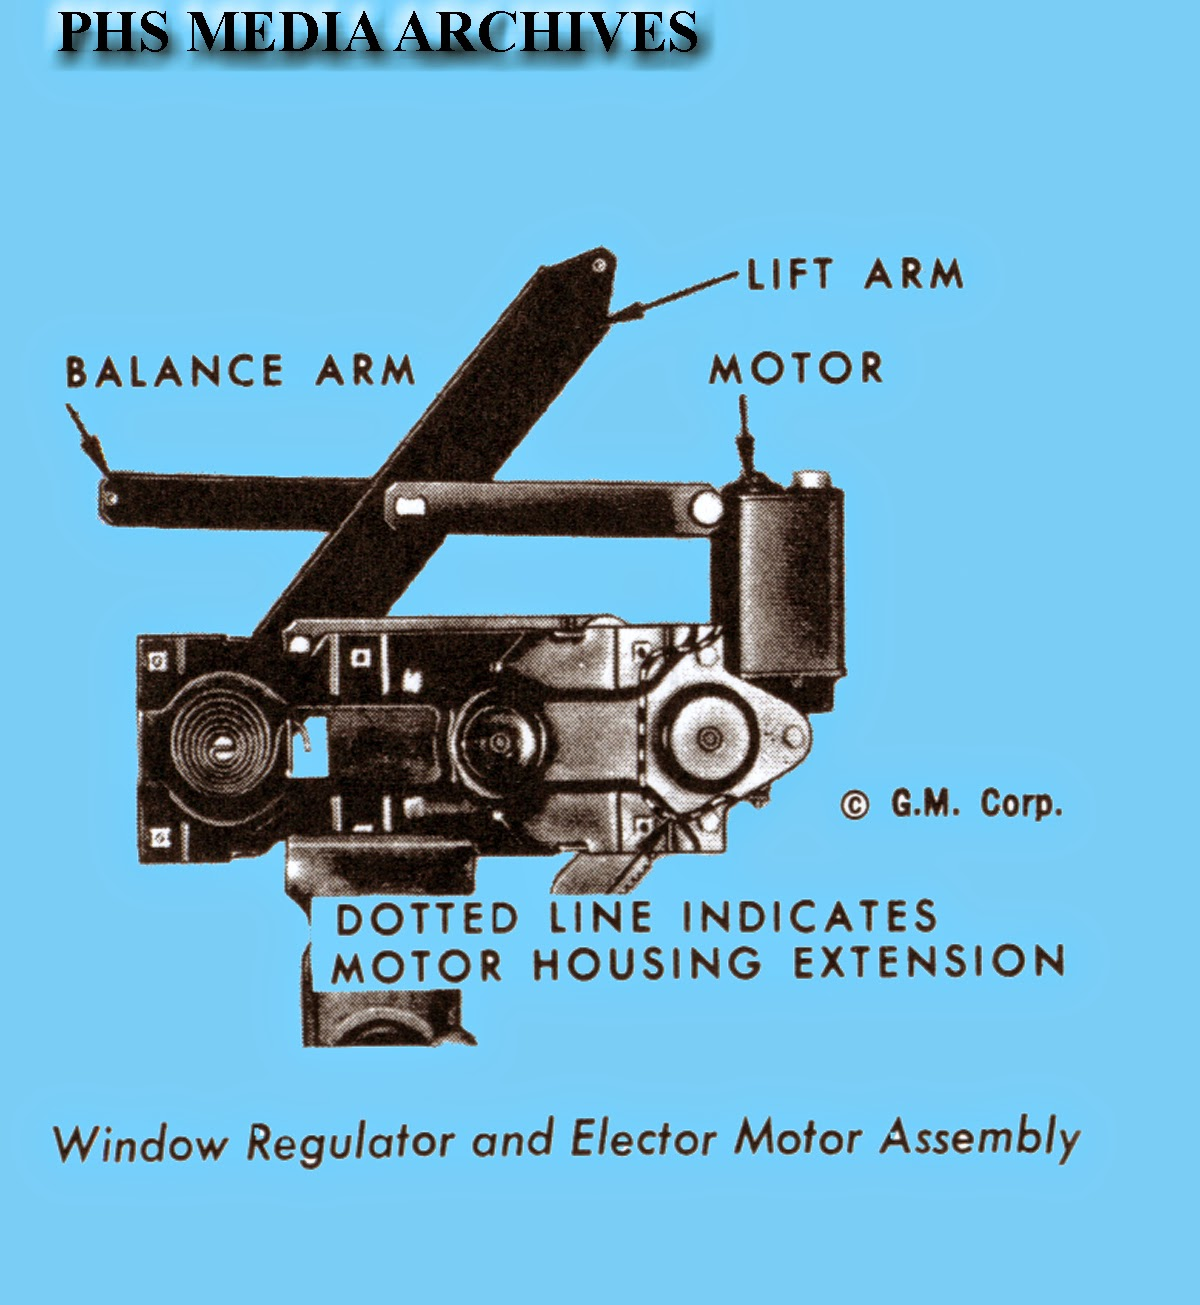 small resolution of this is what the power window motor looks like when attached to lift and balance arms